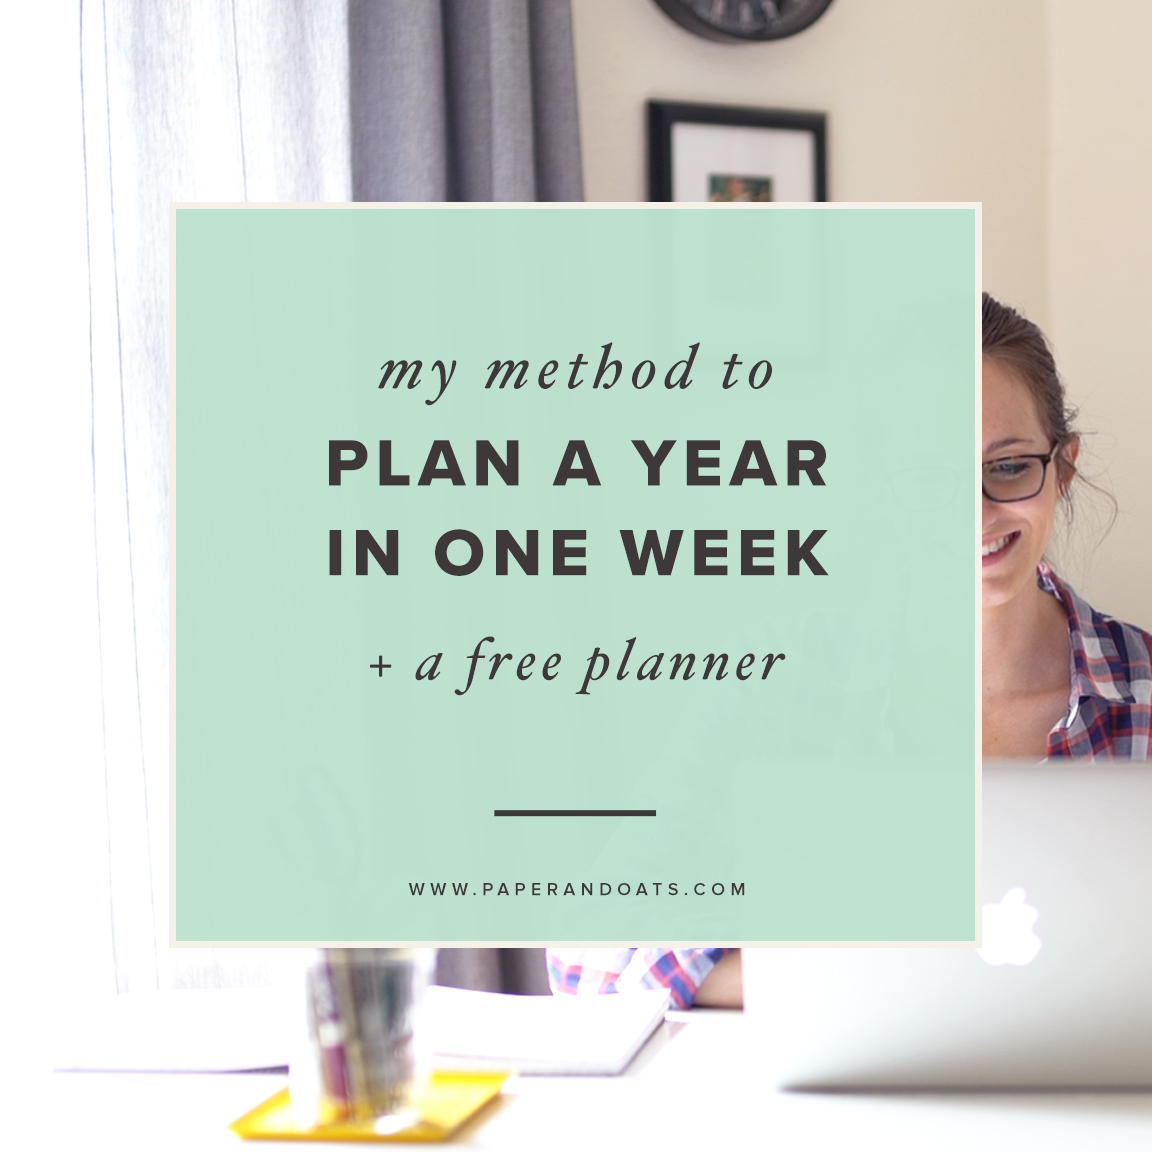 My method to plan a year in one week (+ free planner) –by Paper + Oats